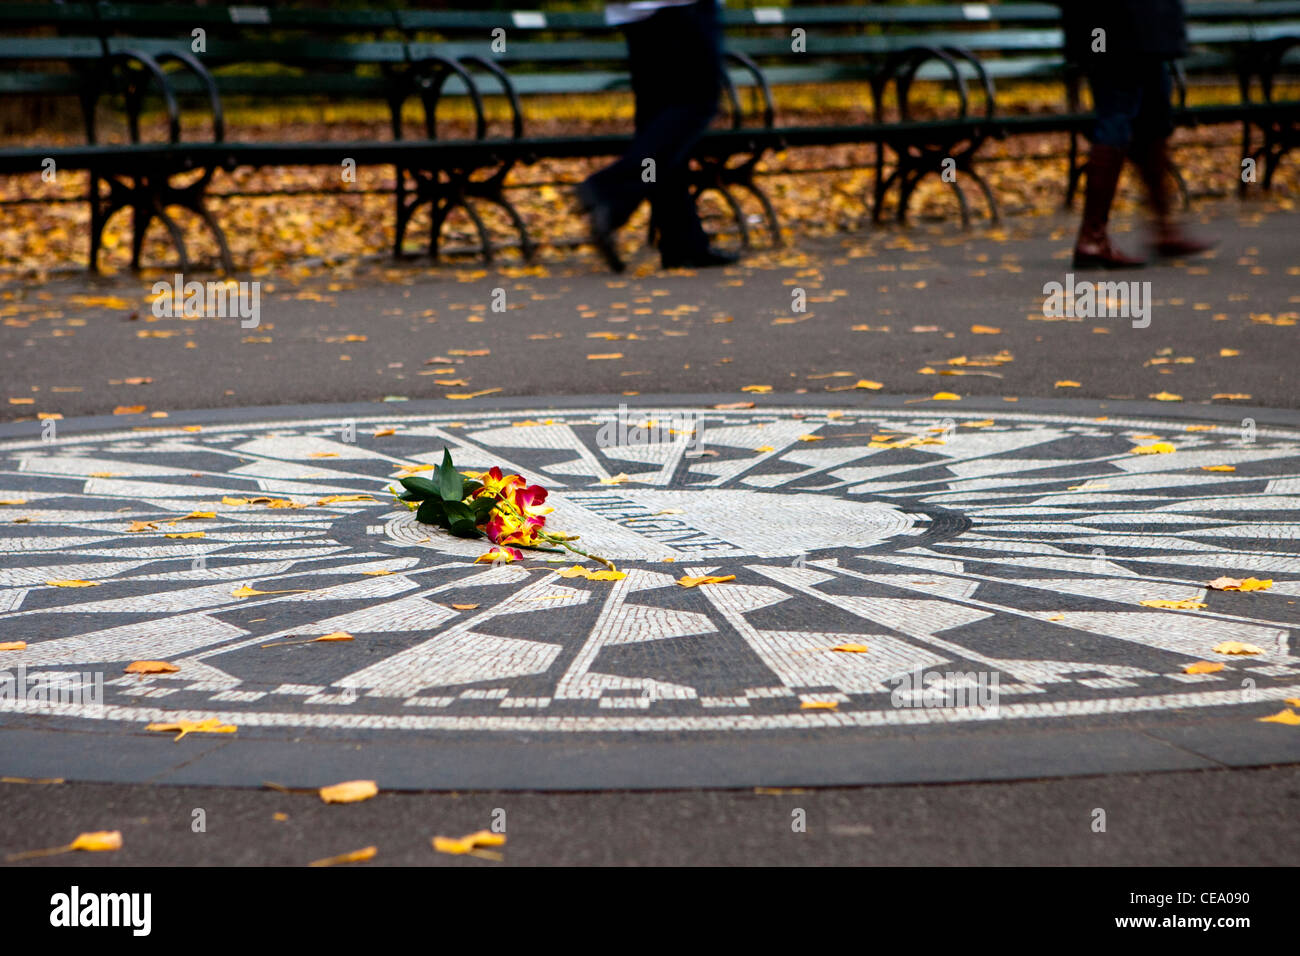 John Lennon Memorial 'Strawberry Fields', Central Park, New York, USA - Stock Image